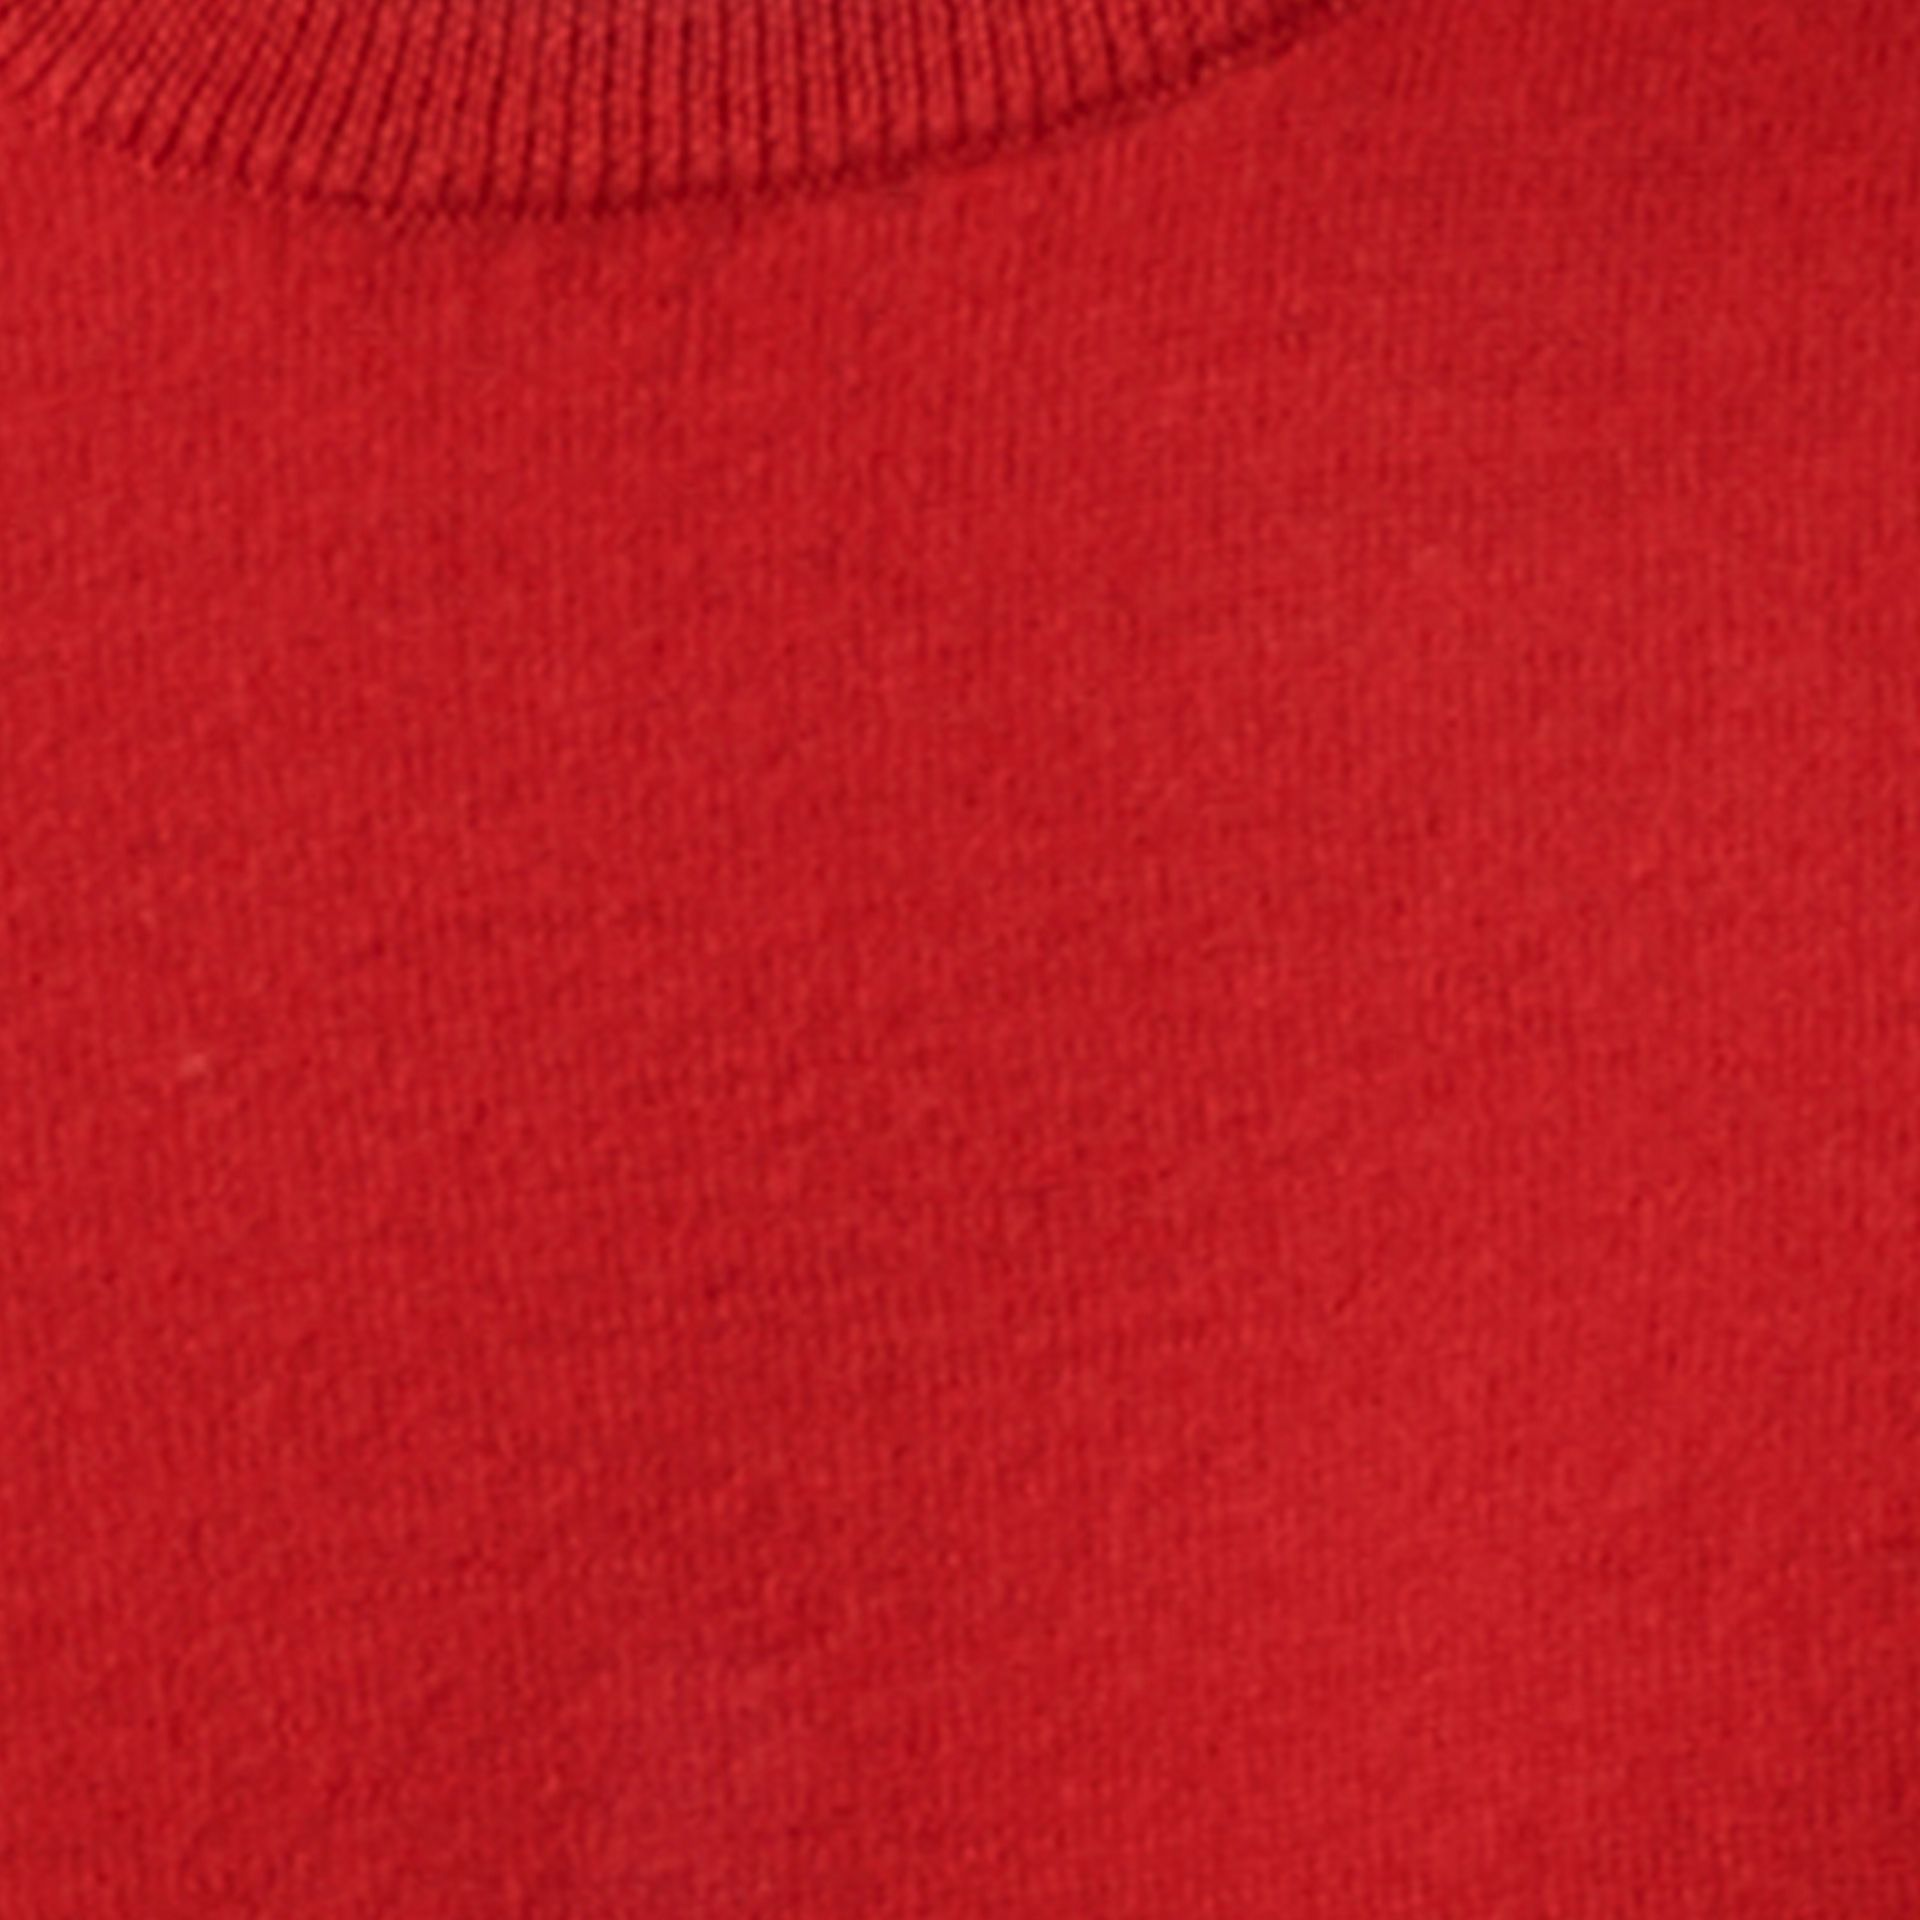 Military red Check Detail Merino Wool Sweater - gallery image 2